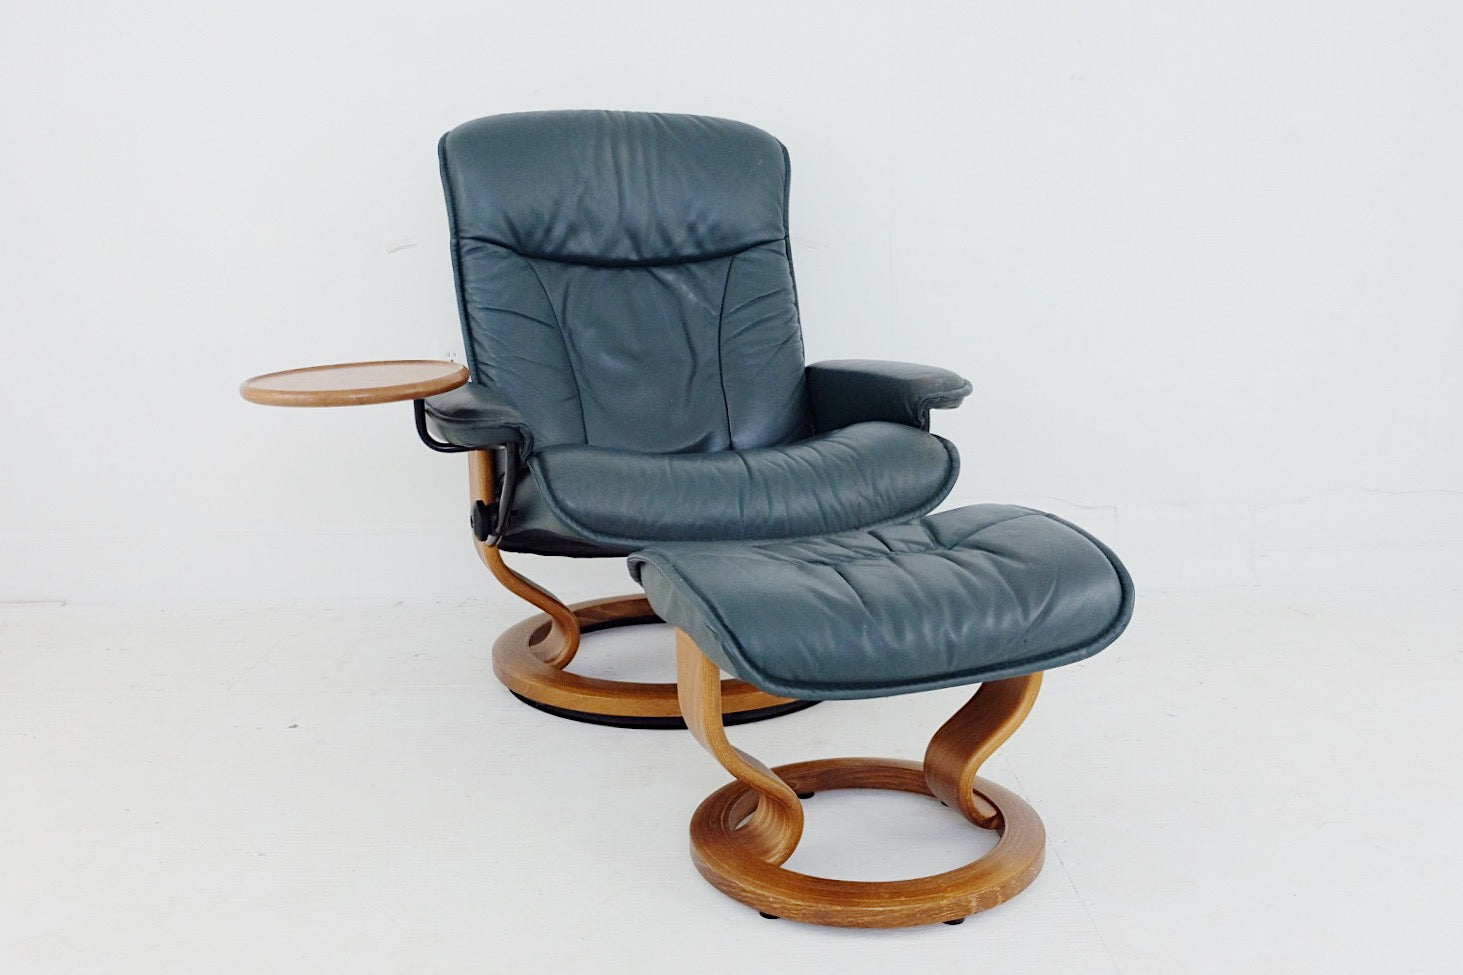 Ekornes Stressless Consul Recliner With Footstool Soft Natural Leather Teak Base with Hardfloor Protector Jungle Green